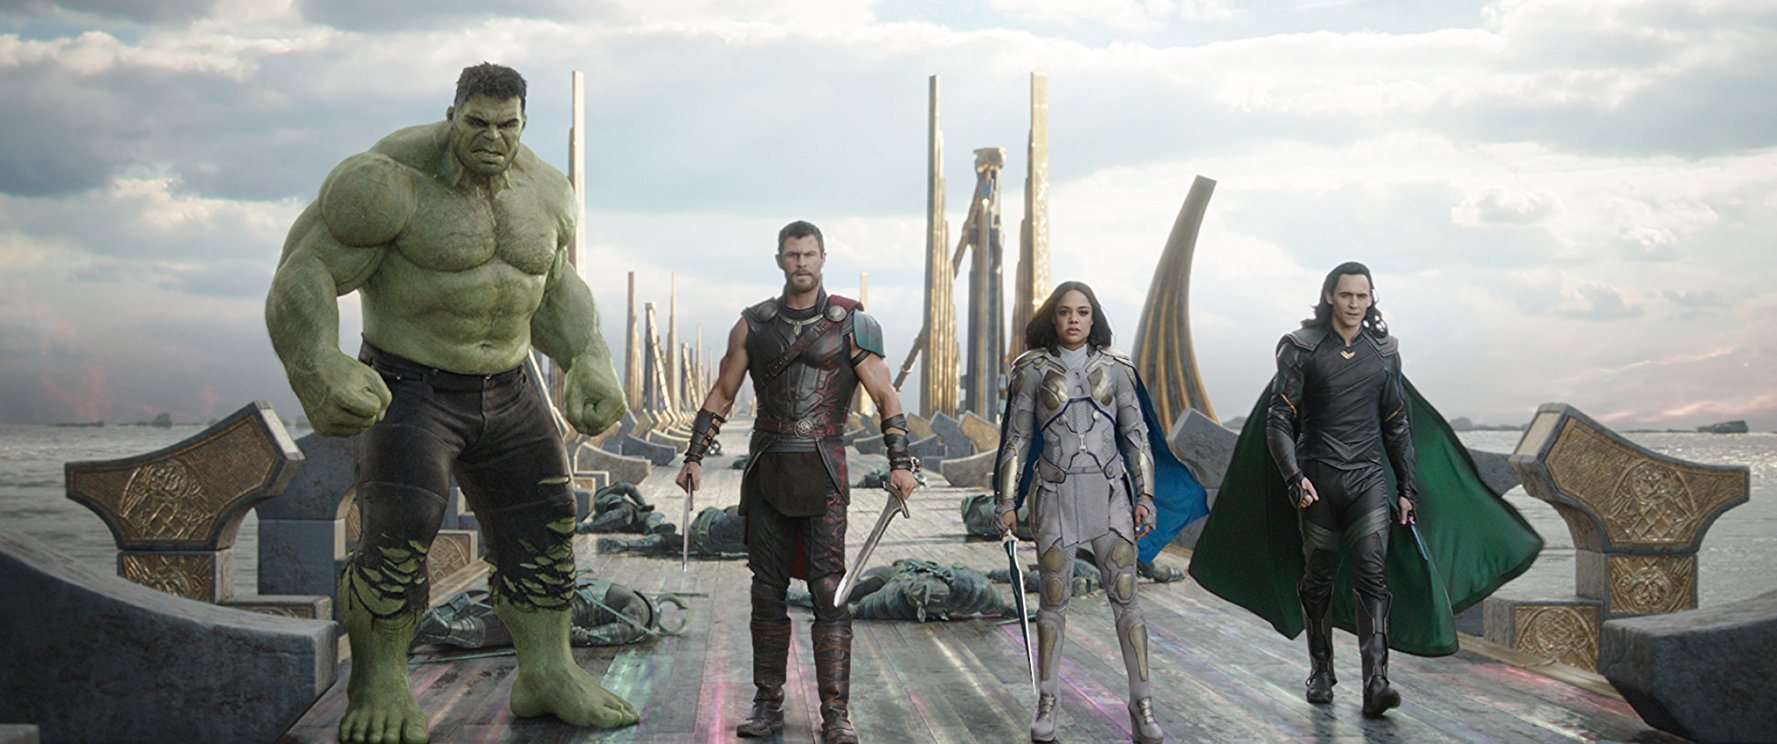 Hulk, Thor, Valkyrie and Loki in Thor Ragnarok